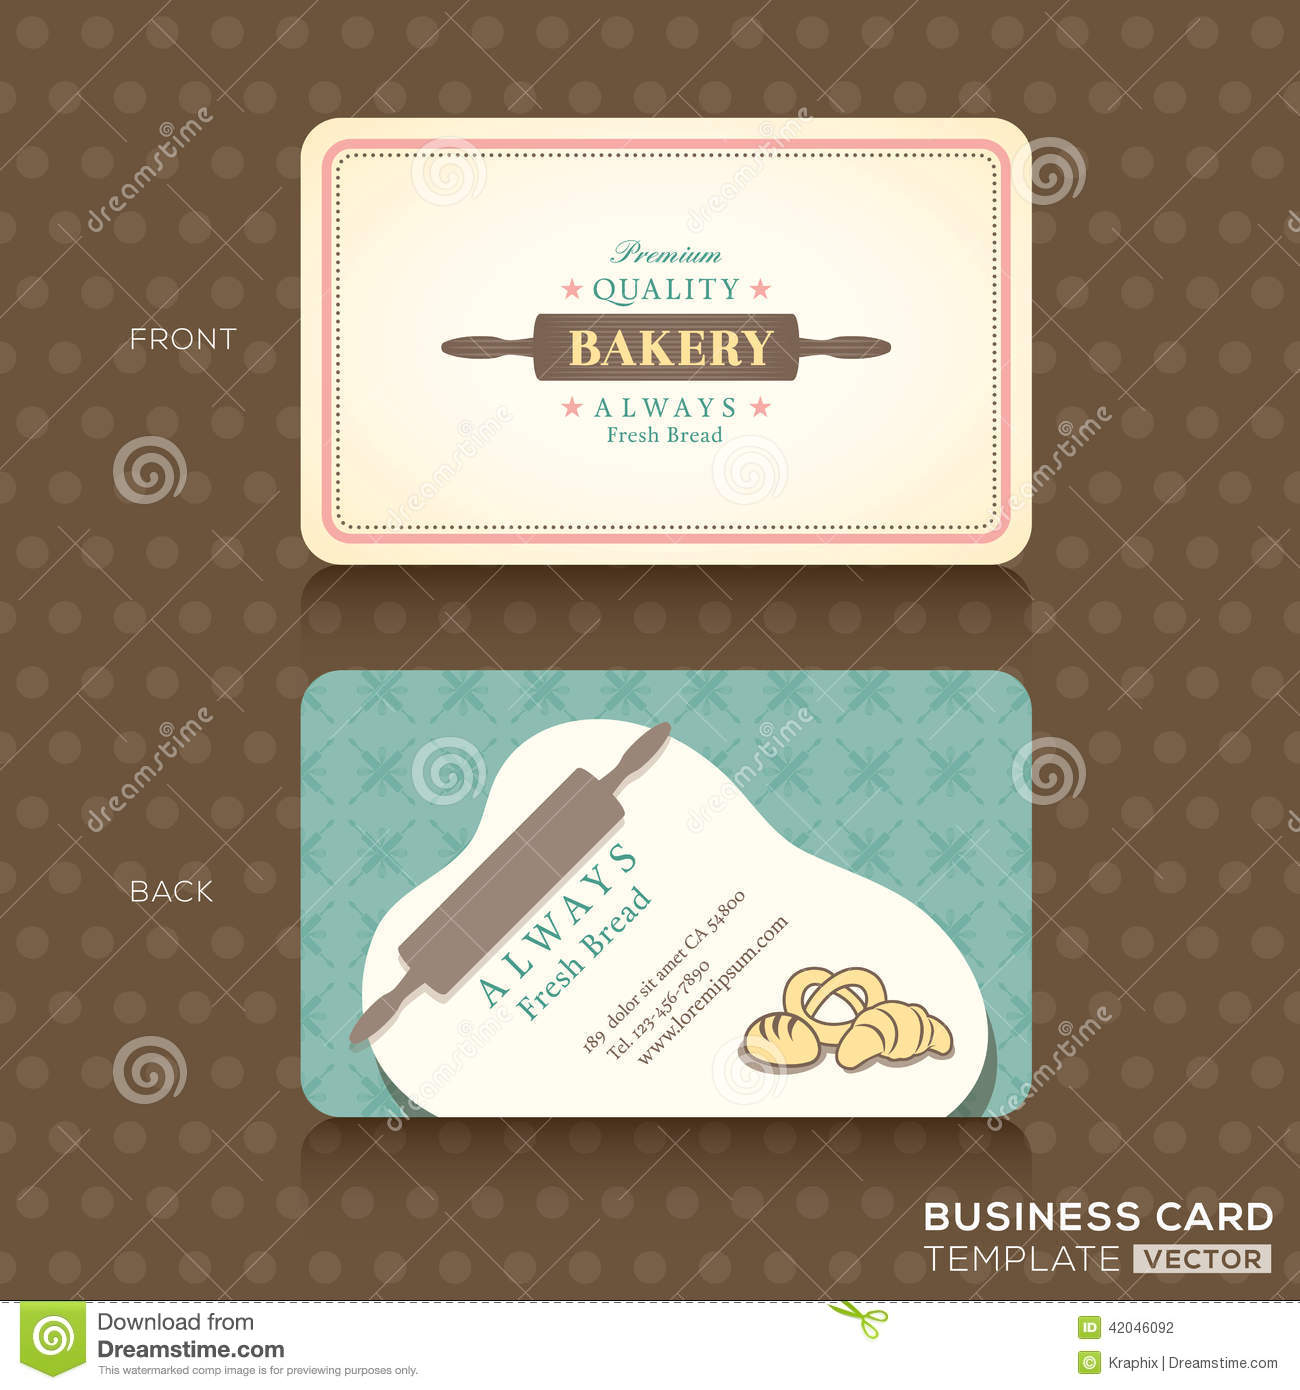 Retro vintage business card for bakery house stock vector retro vintage business card for bakery house flashek Choice Image